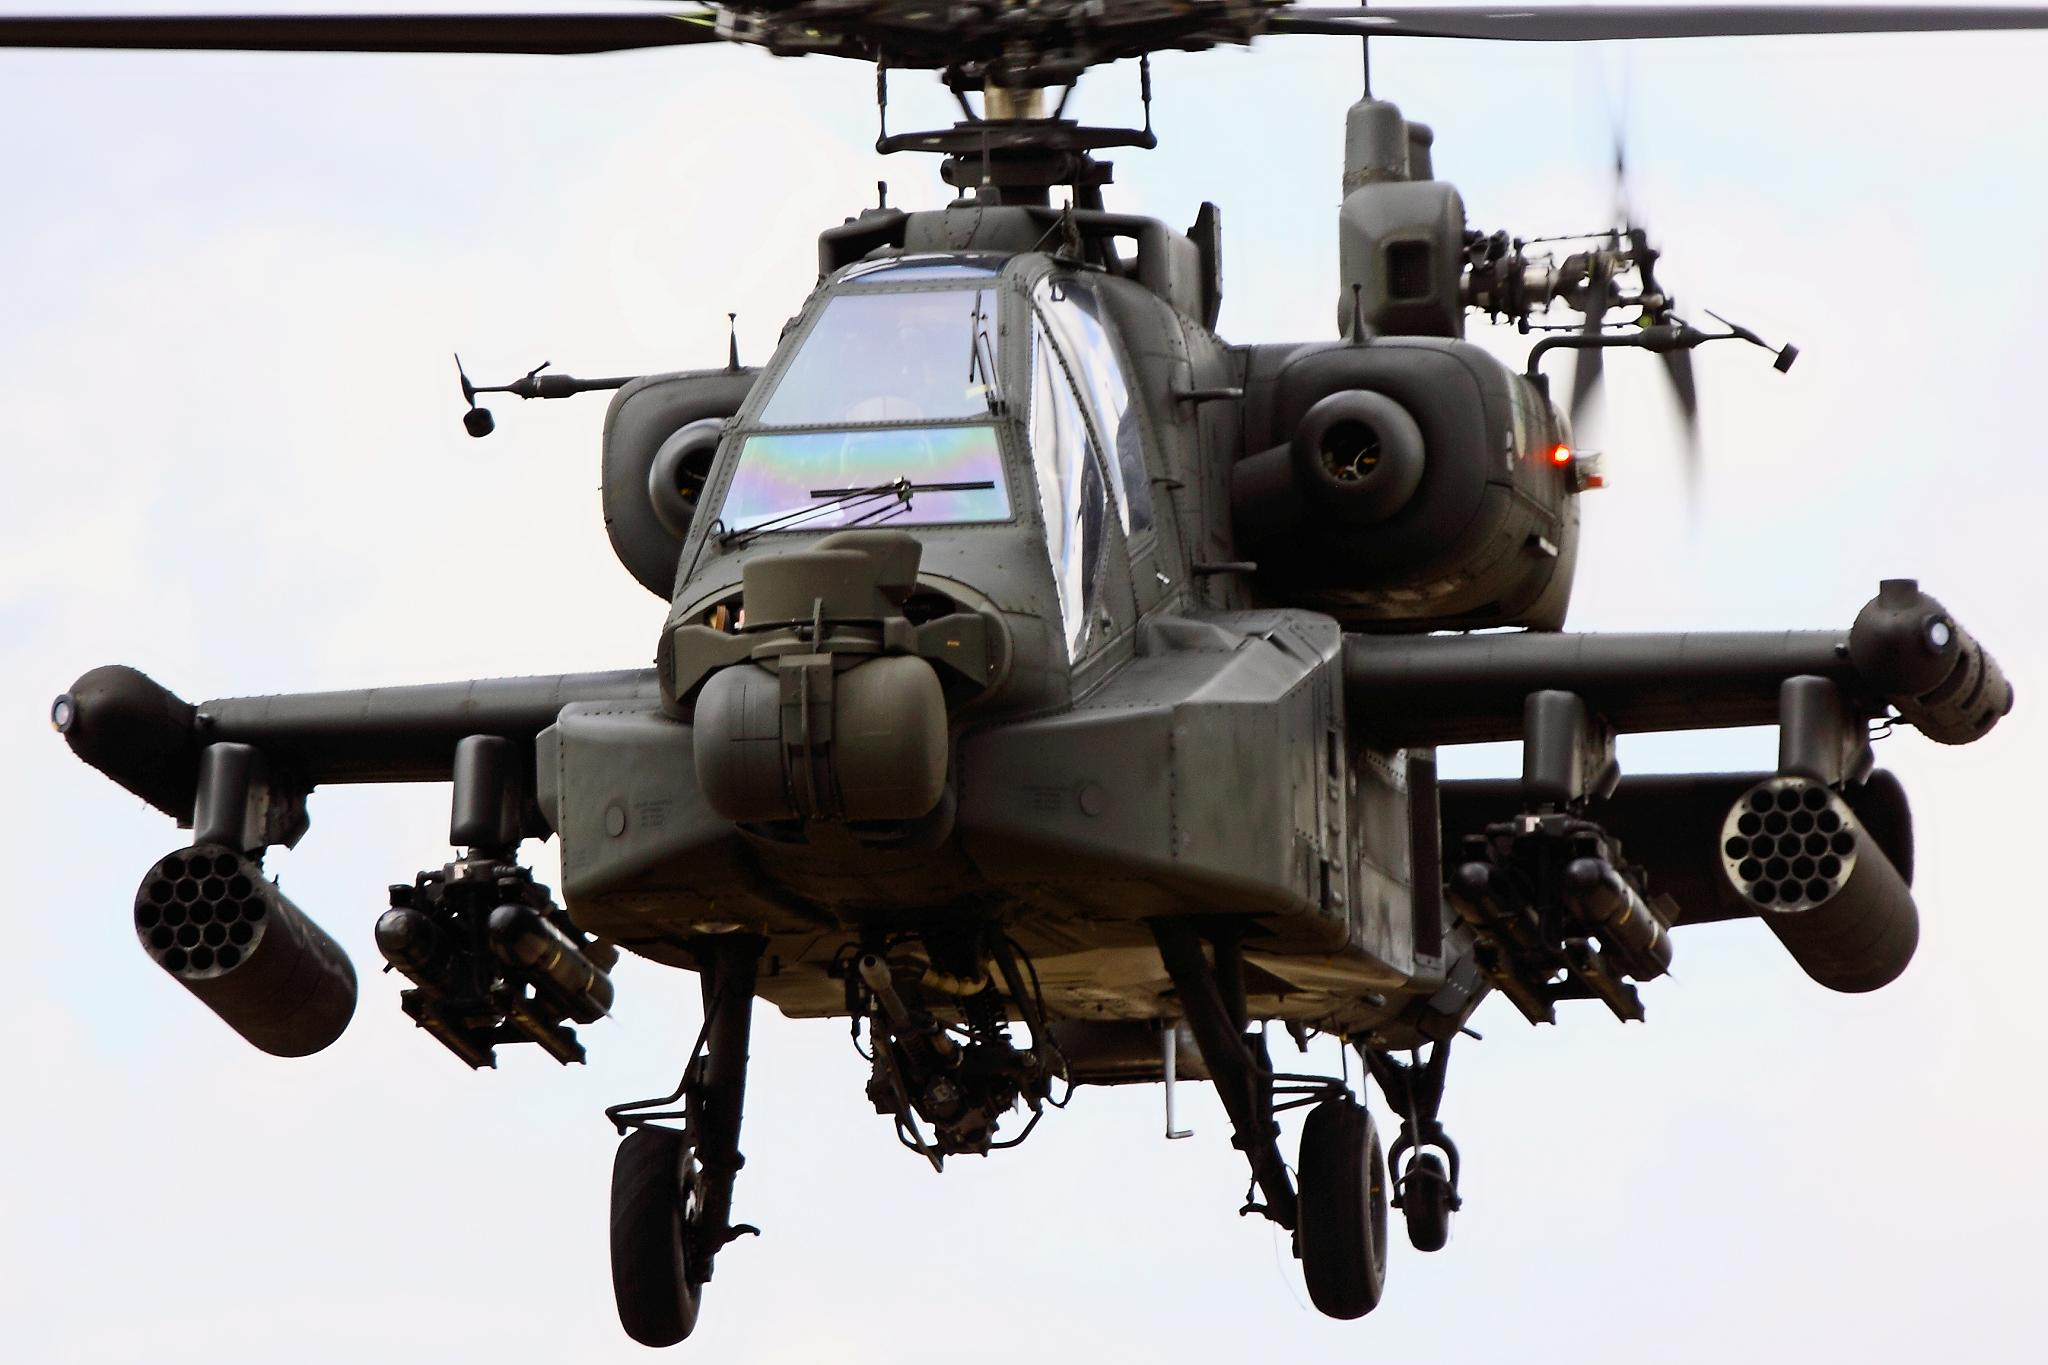 the apache helicopter with File Ah64 Apache   Riat 2010  4983540511 on Islamic State Has A Guide To Shoot Down Apache Helicopters With Manpads likewise Transportation additionally File AH64 Apache   RIAT 2010  4983540511 moreover 234940778 Hasegawa 148 Ah 64d Apache Helicopter as well Transportation.